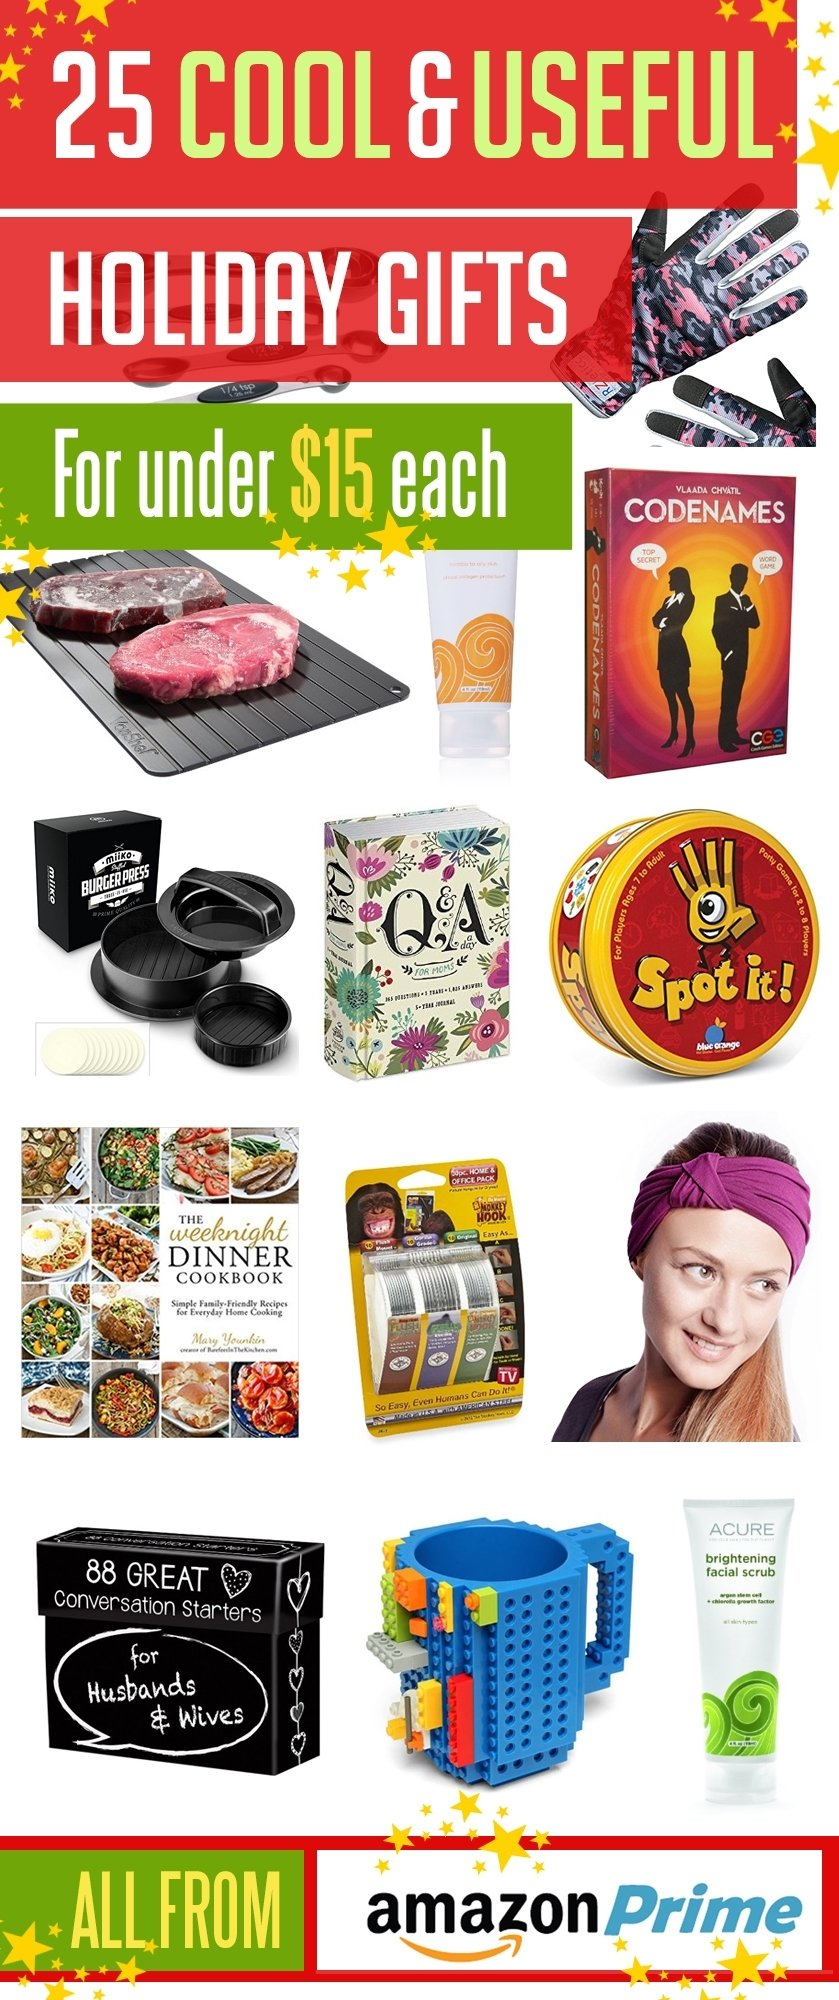 10 Ideal Amazon Gift Ideas For Her 25 cool useful christmas gift ideas from amazon prime for under 15 2 2020